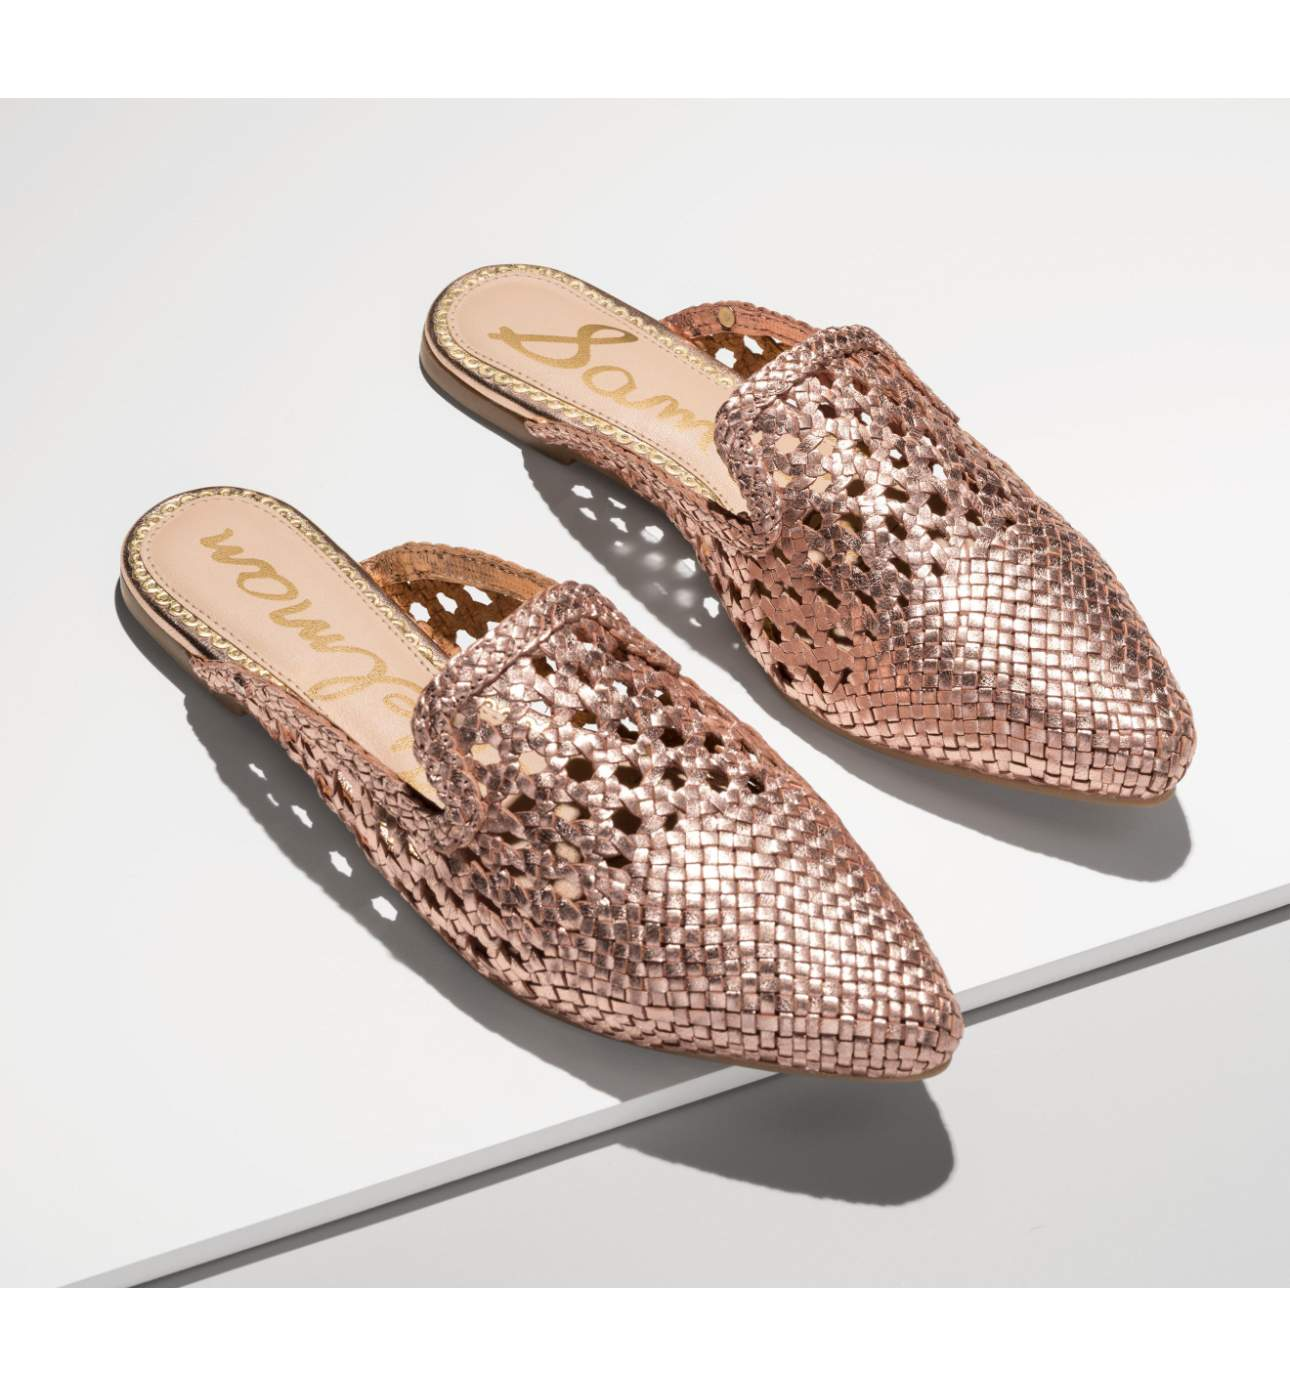 <p>Metalic shades scream rock n roll.{&amp;nbsp;} You'll see mules marching all over the streets of Seattle this Spring.{&amp;nbsp;} Perfect for tackling those big Seattle hills downtown. Navya Woven Loafer Mule - $89.95. (Image: Nordstrom){&amp;nbsp;}</p><p></p>